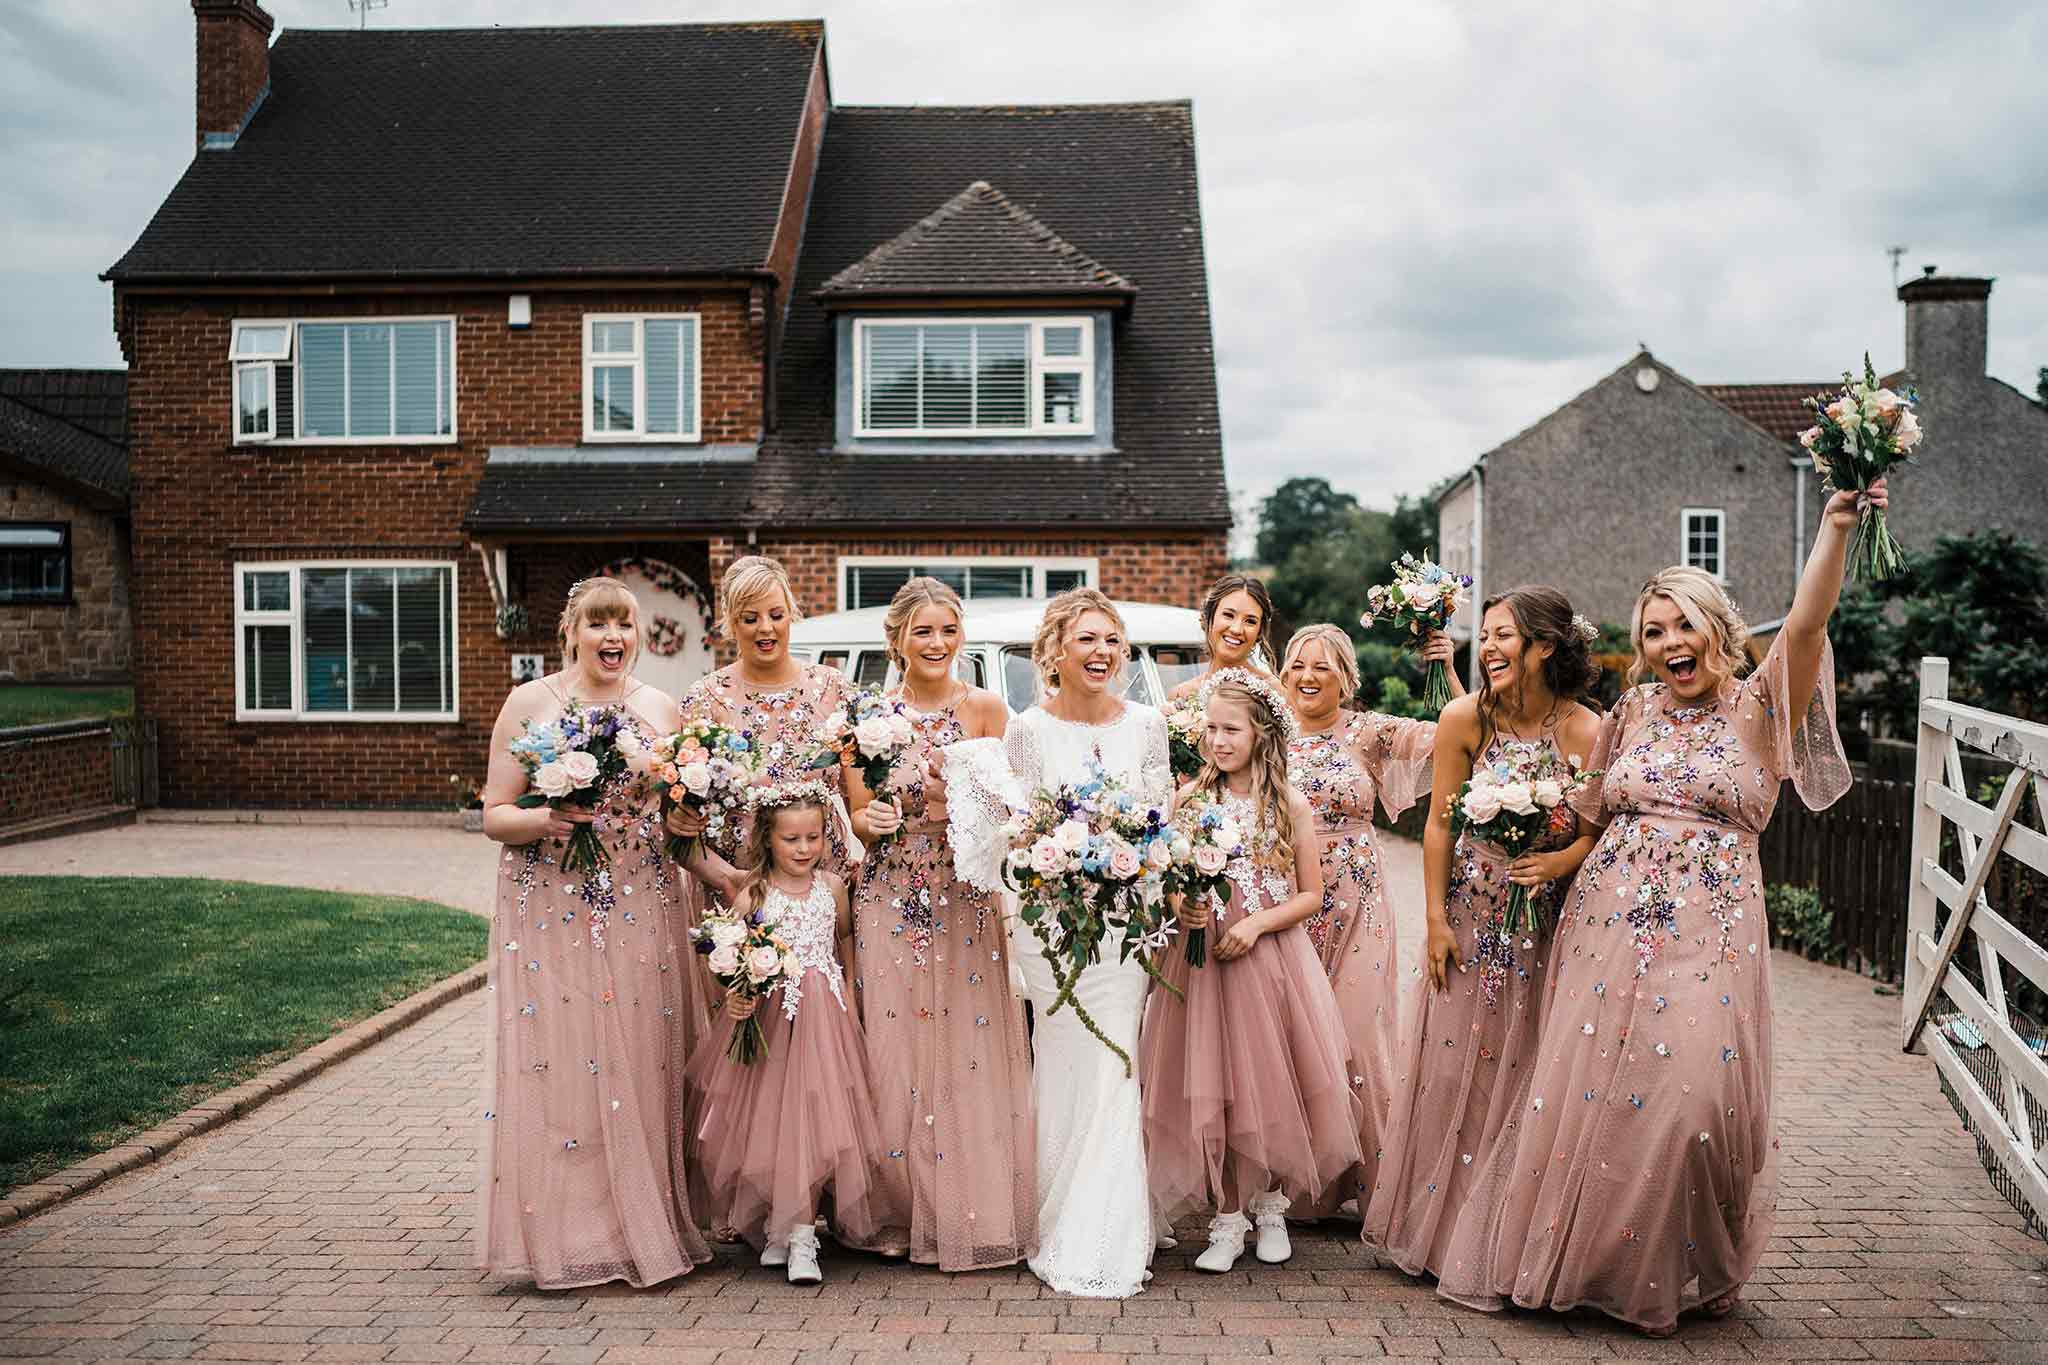 Bride and bridesmaids captured laughing together| Fine art photography